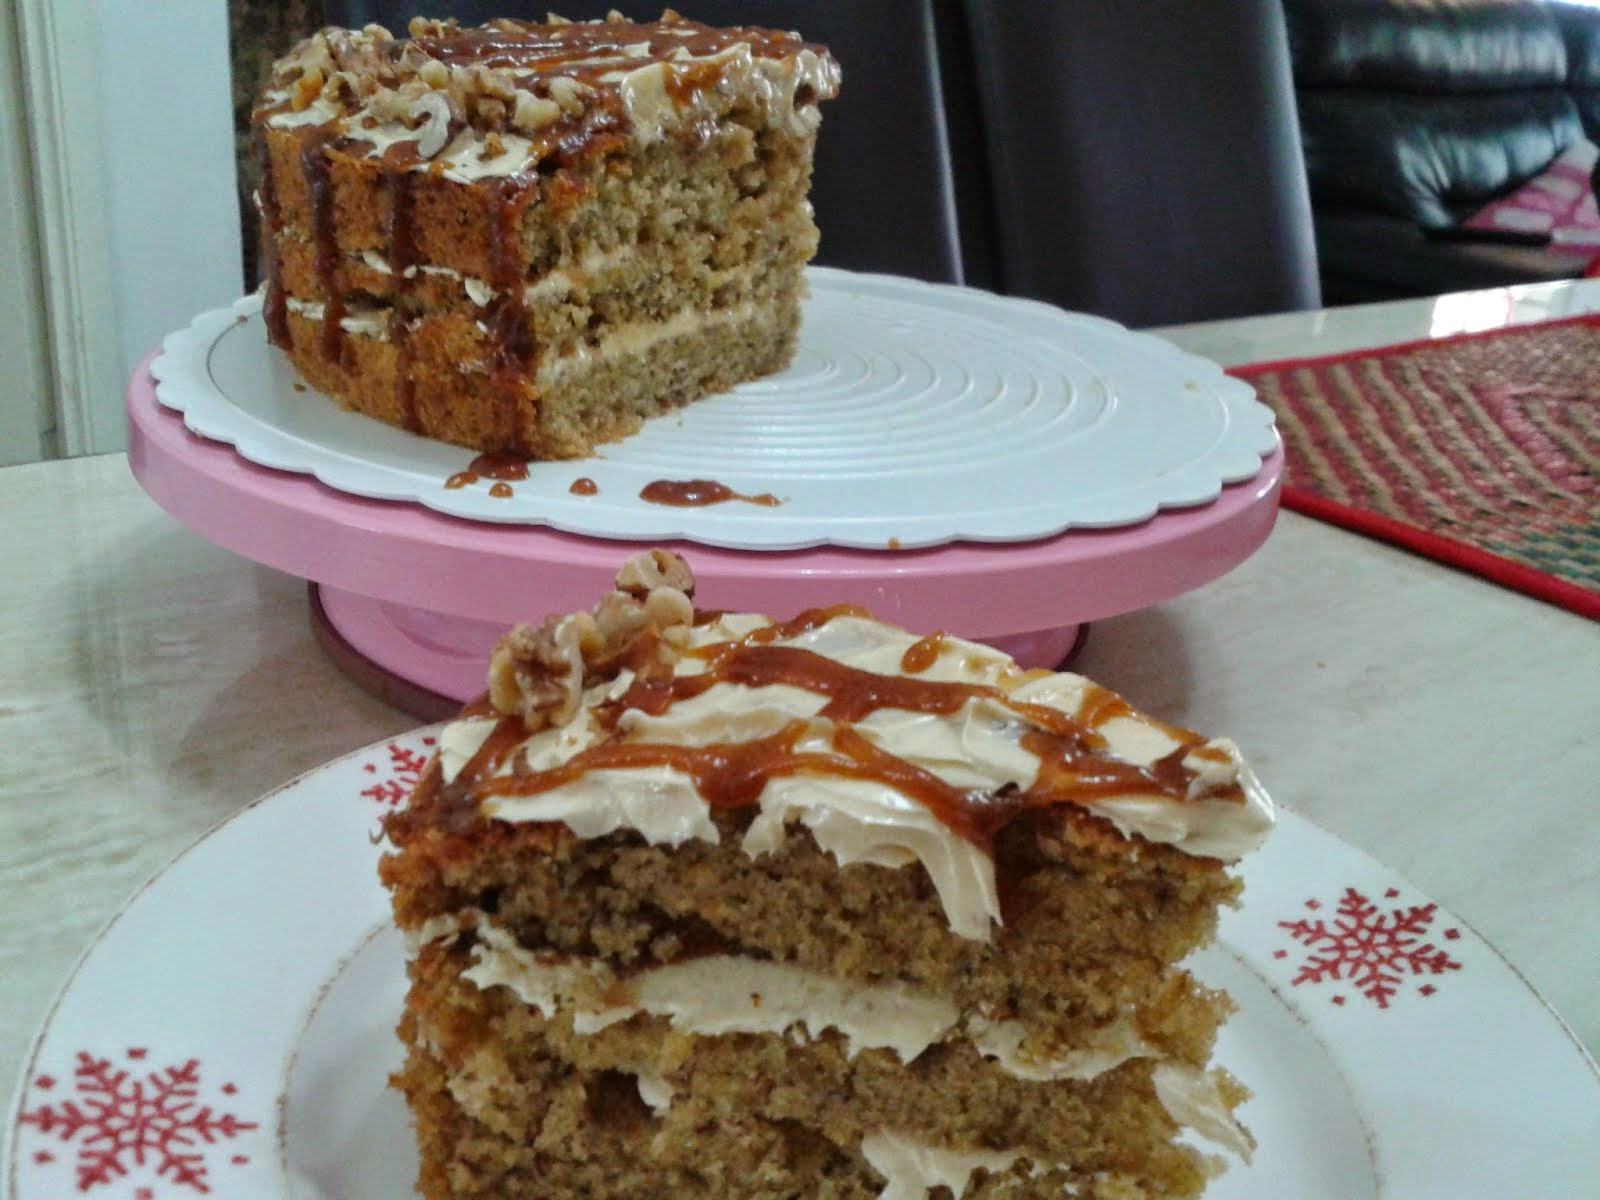 Banana Walnut with Caramel and Swiss Buttercream